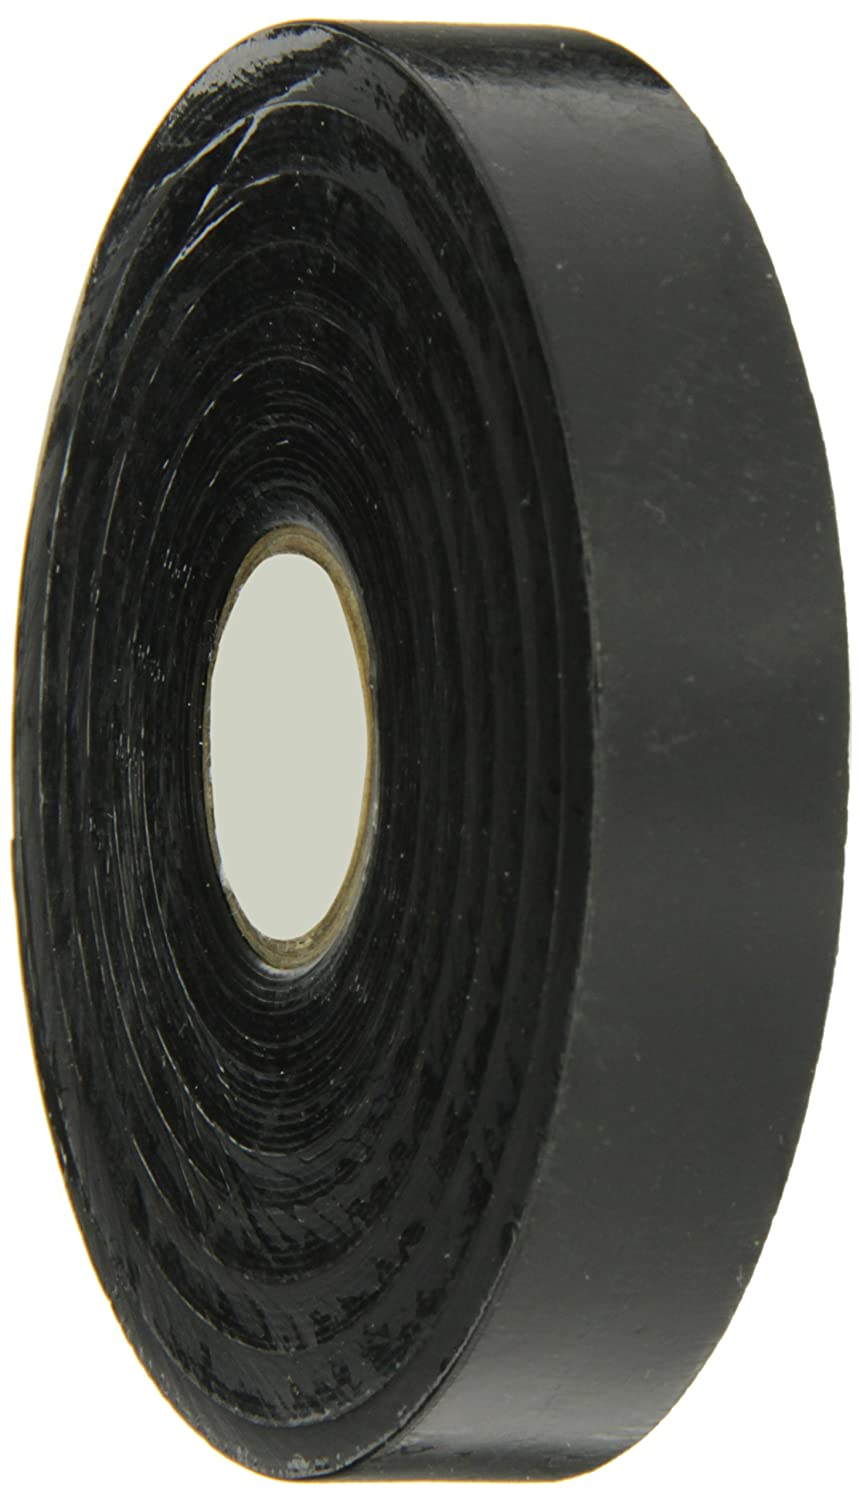 Scotchr Linerless Rubber Splicing Tape 130c 1 2 In X 30 Ft Best Wiring Harness Black Roll Carton Electrical Industrial Scientific